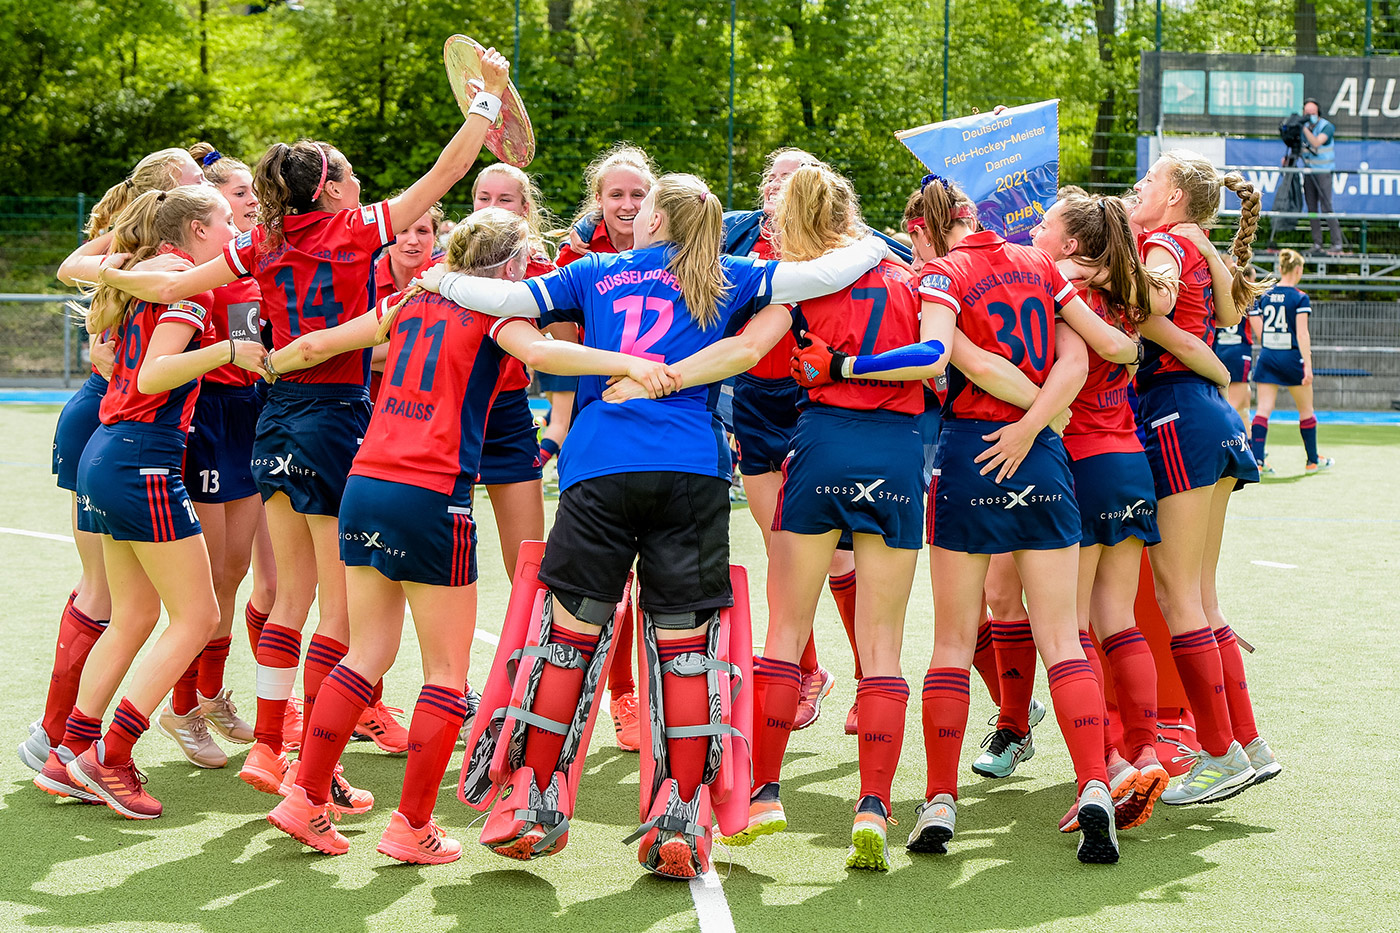 XSTAFF expands cooperation with the Düsseldorf hockey club